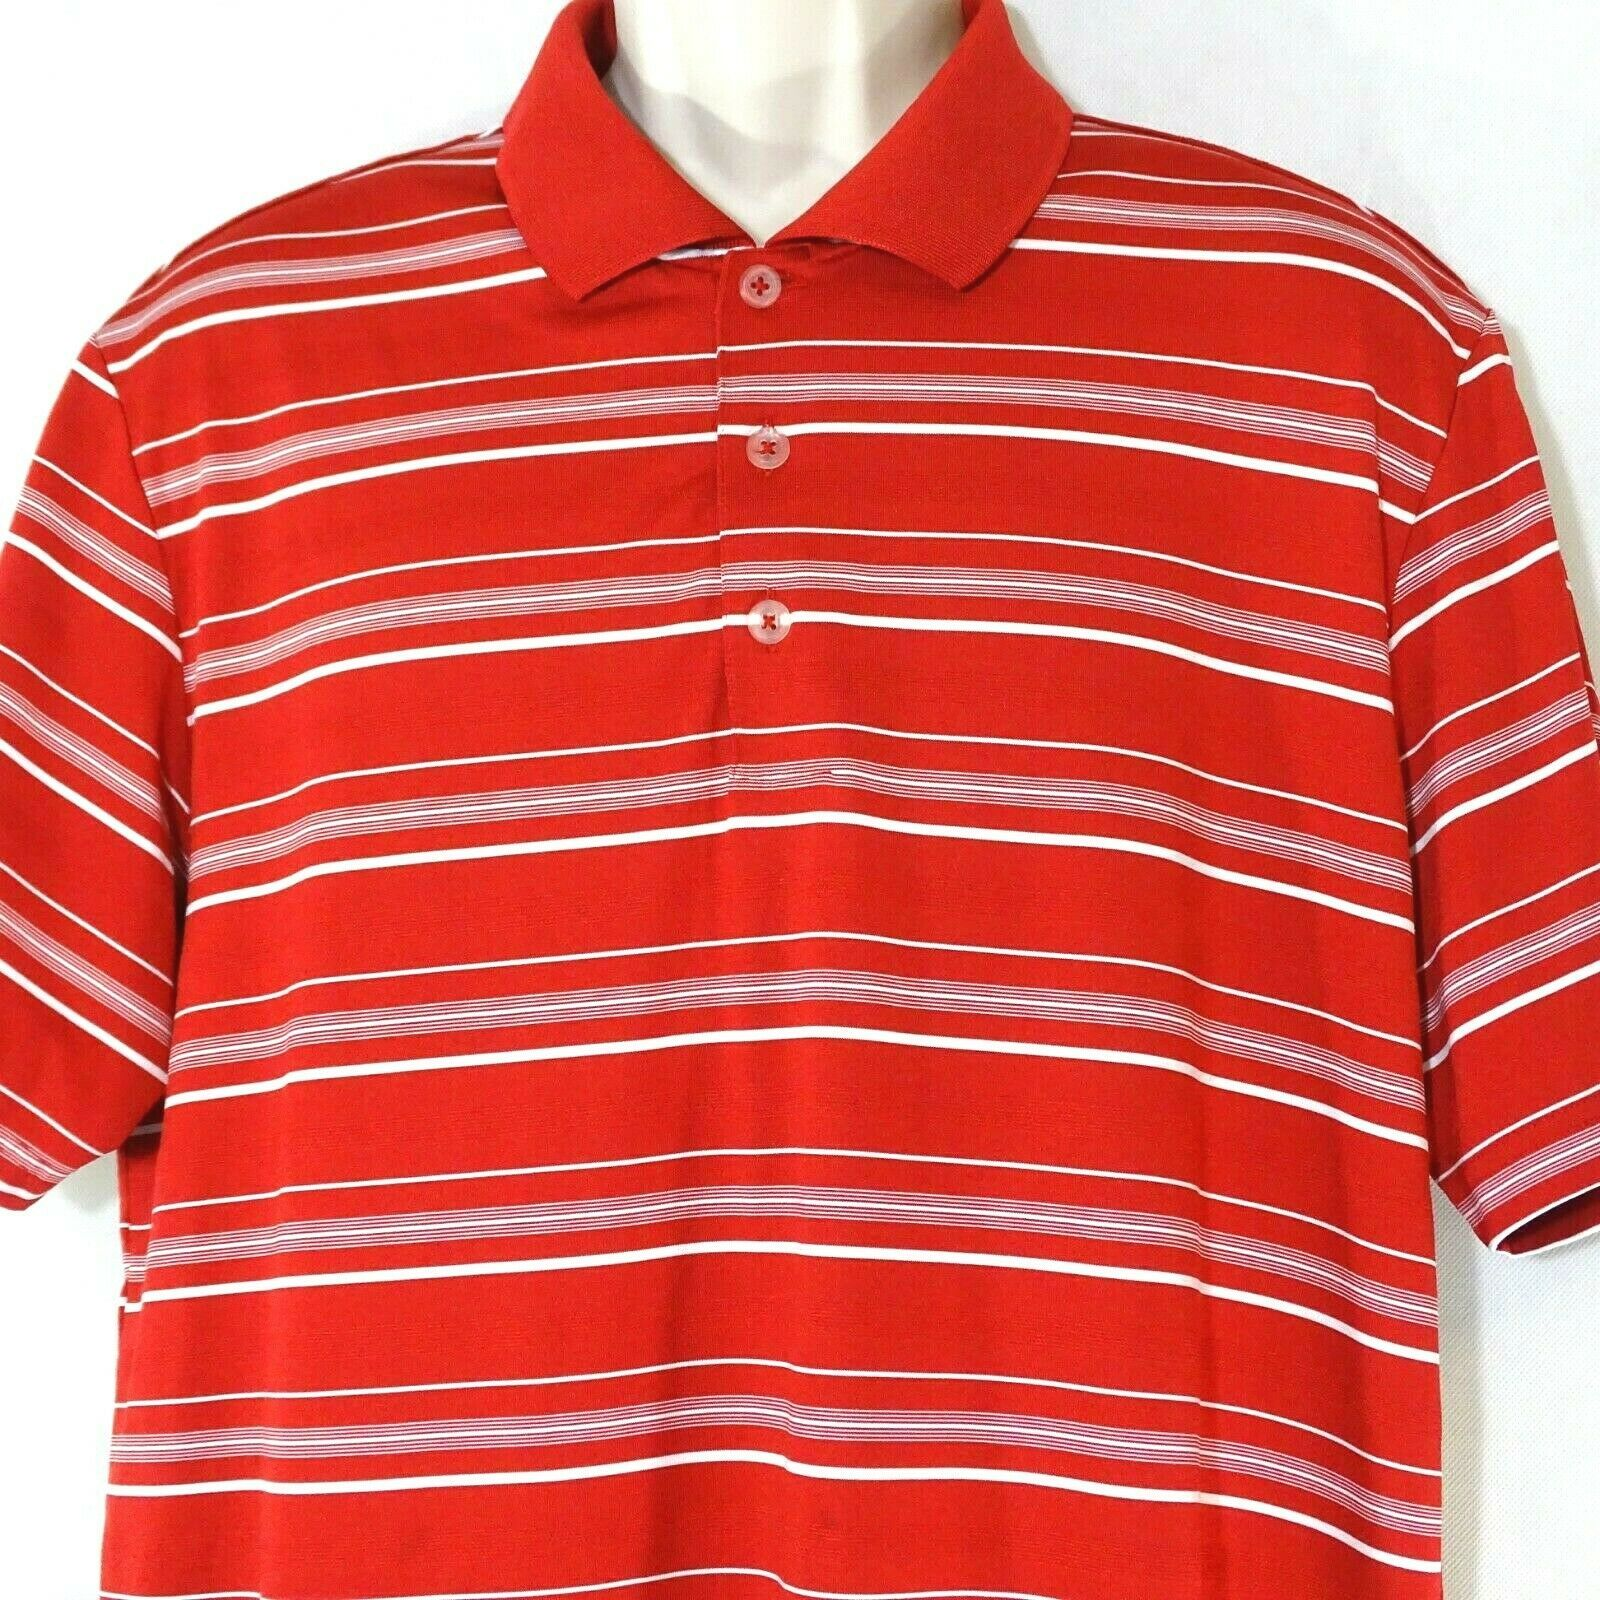 Primary image for Adidas Pure Motion Golf Polo Shirt Men Size L Red White Striped Short Sleeve